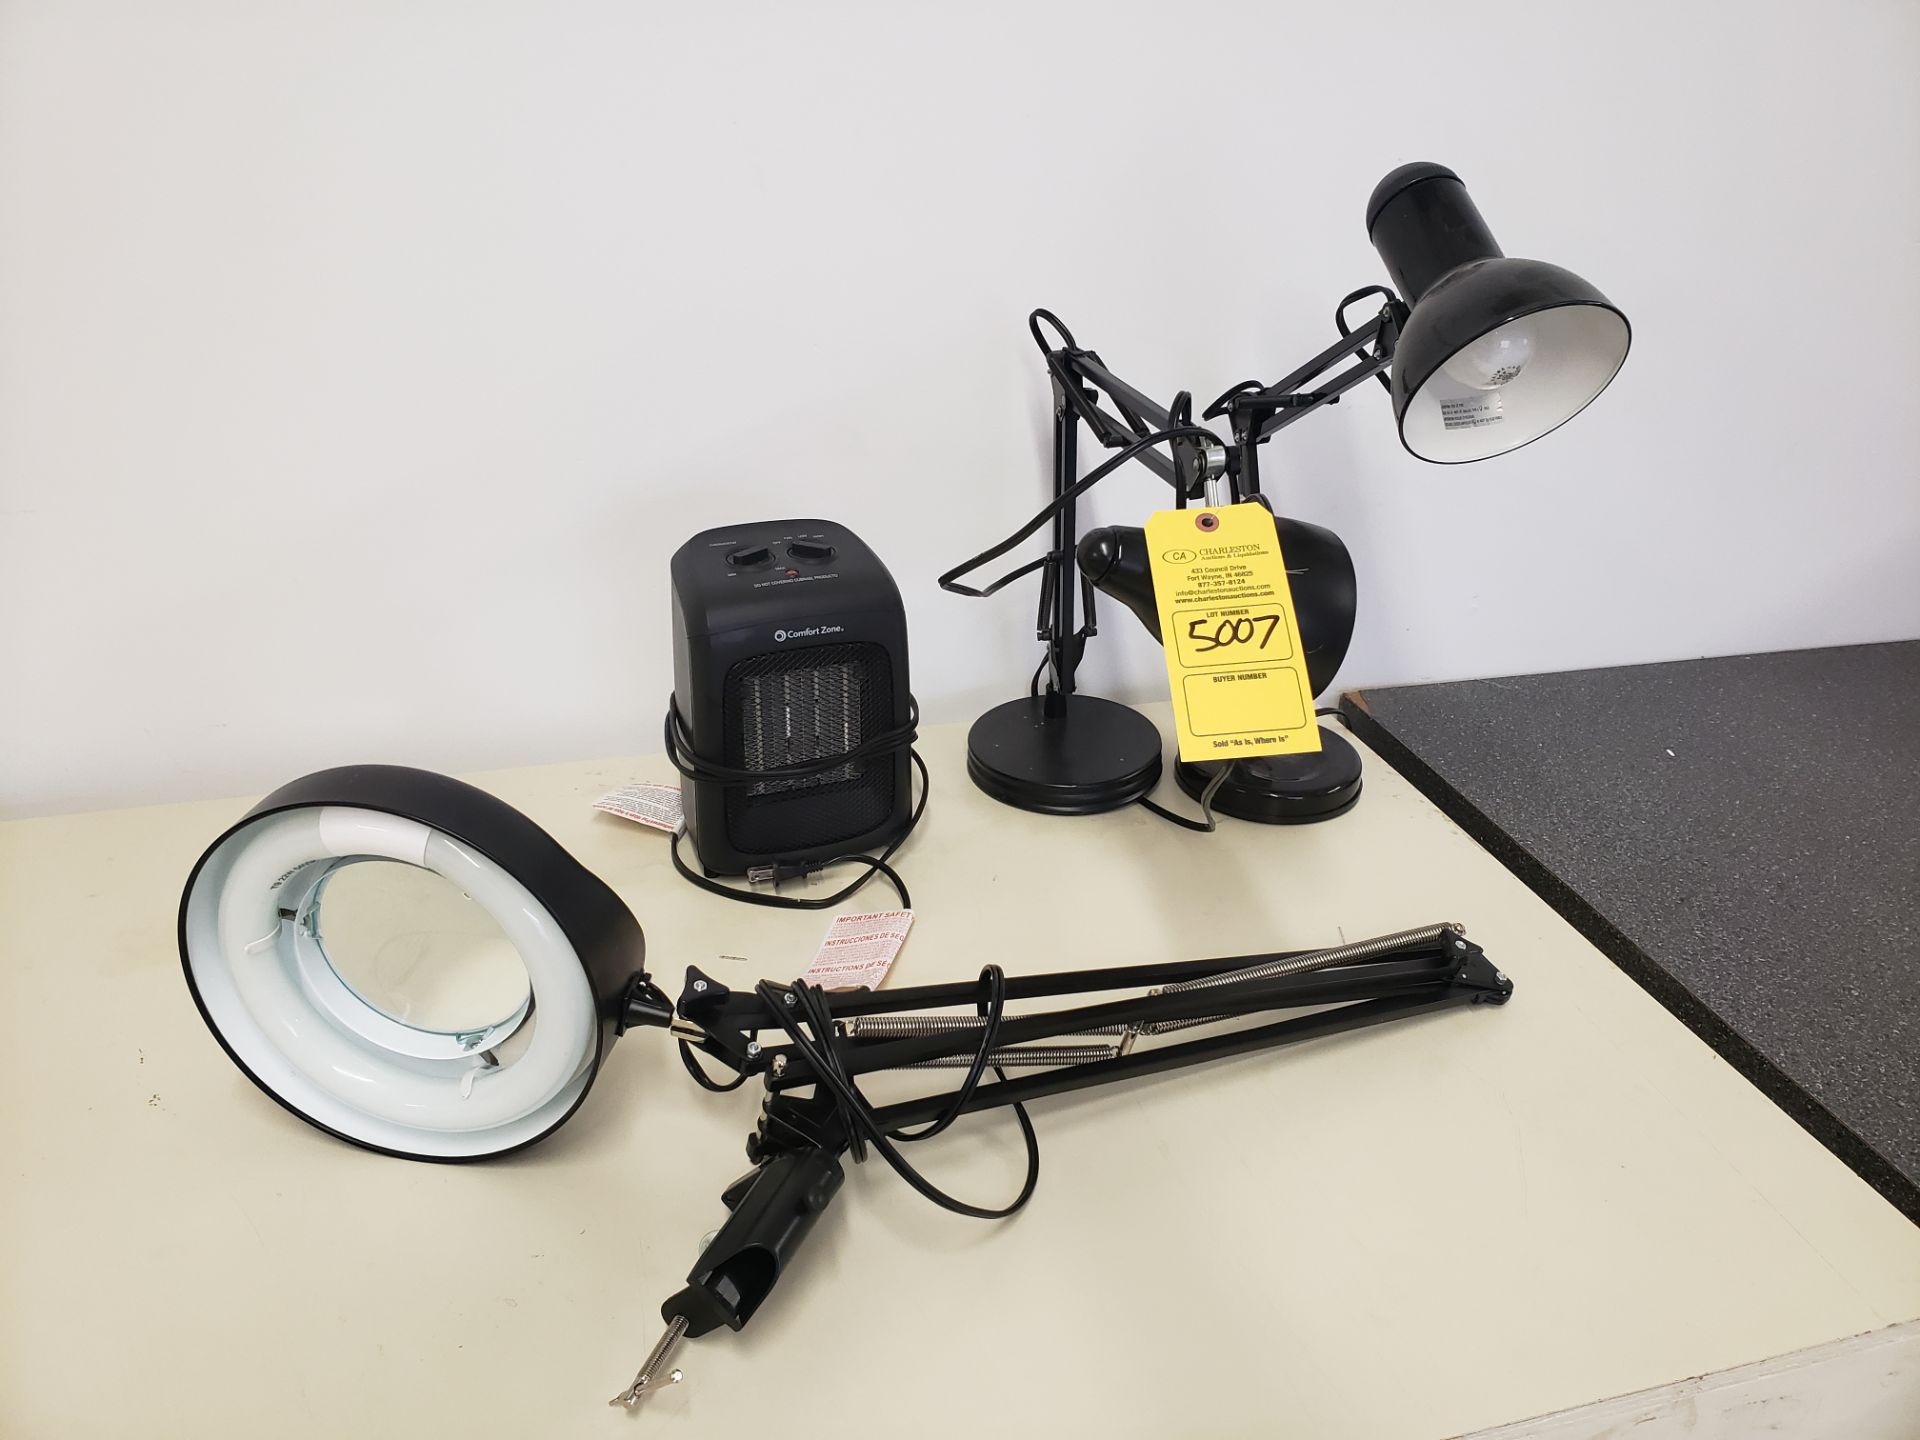 Lot 5007 - (3) LAMPS & SMALL HEATER (LOCATED AT: 16335 LIMA ROAD BLDG. 4 HUNTERTOWN, IN 46748)